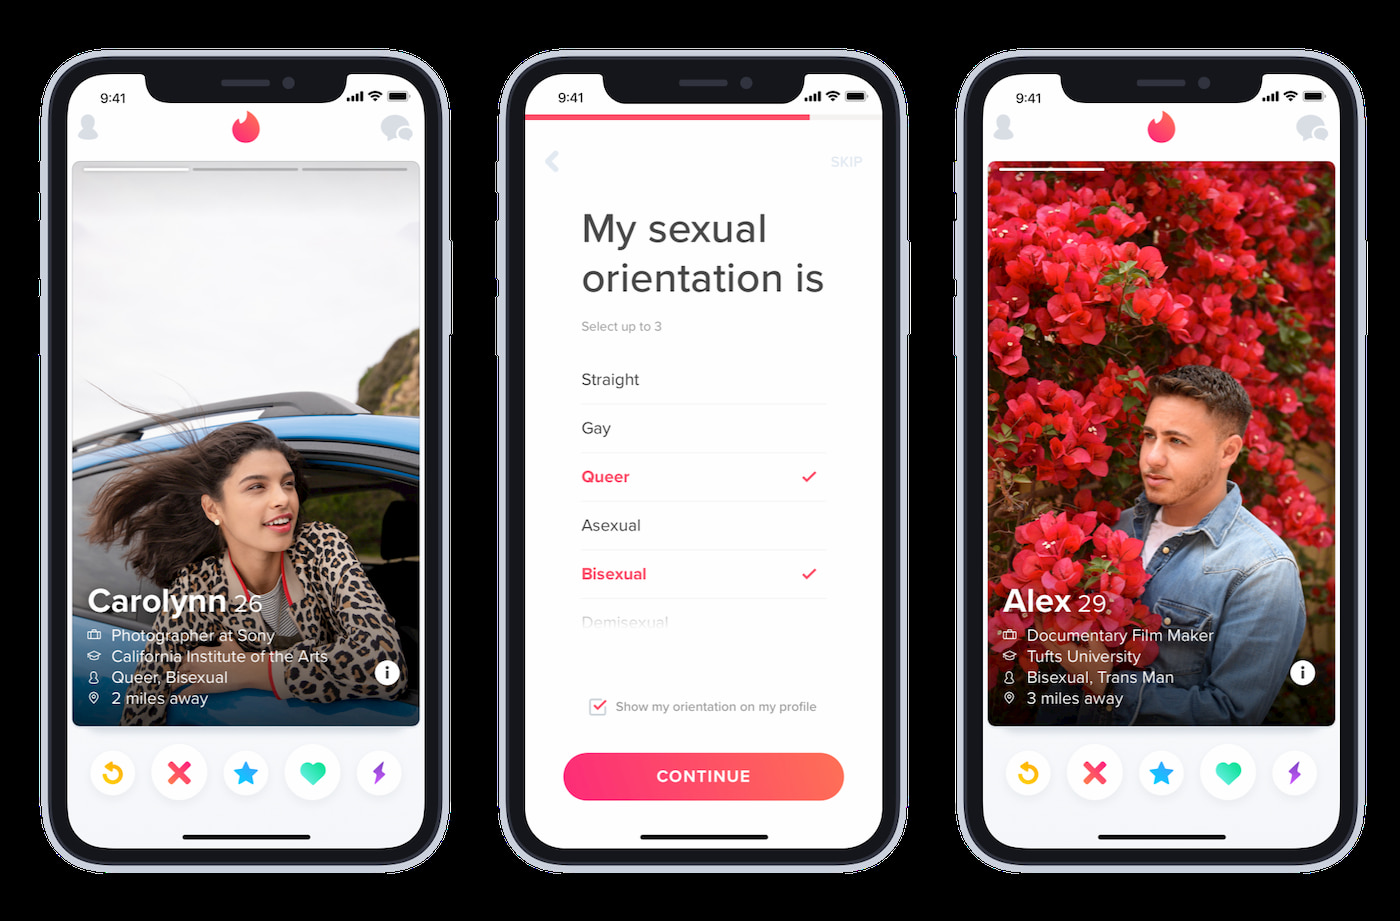 Tinder is launching a travel alert for LGBTQ users in hostile countries